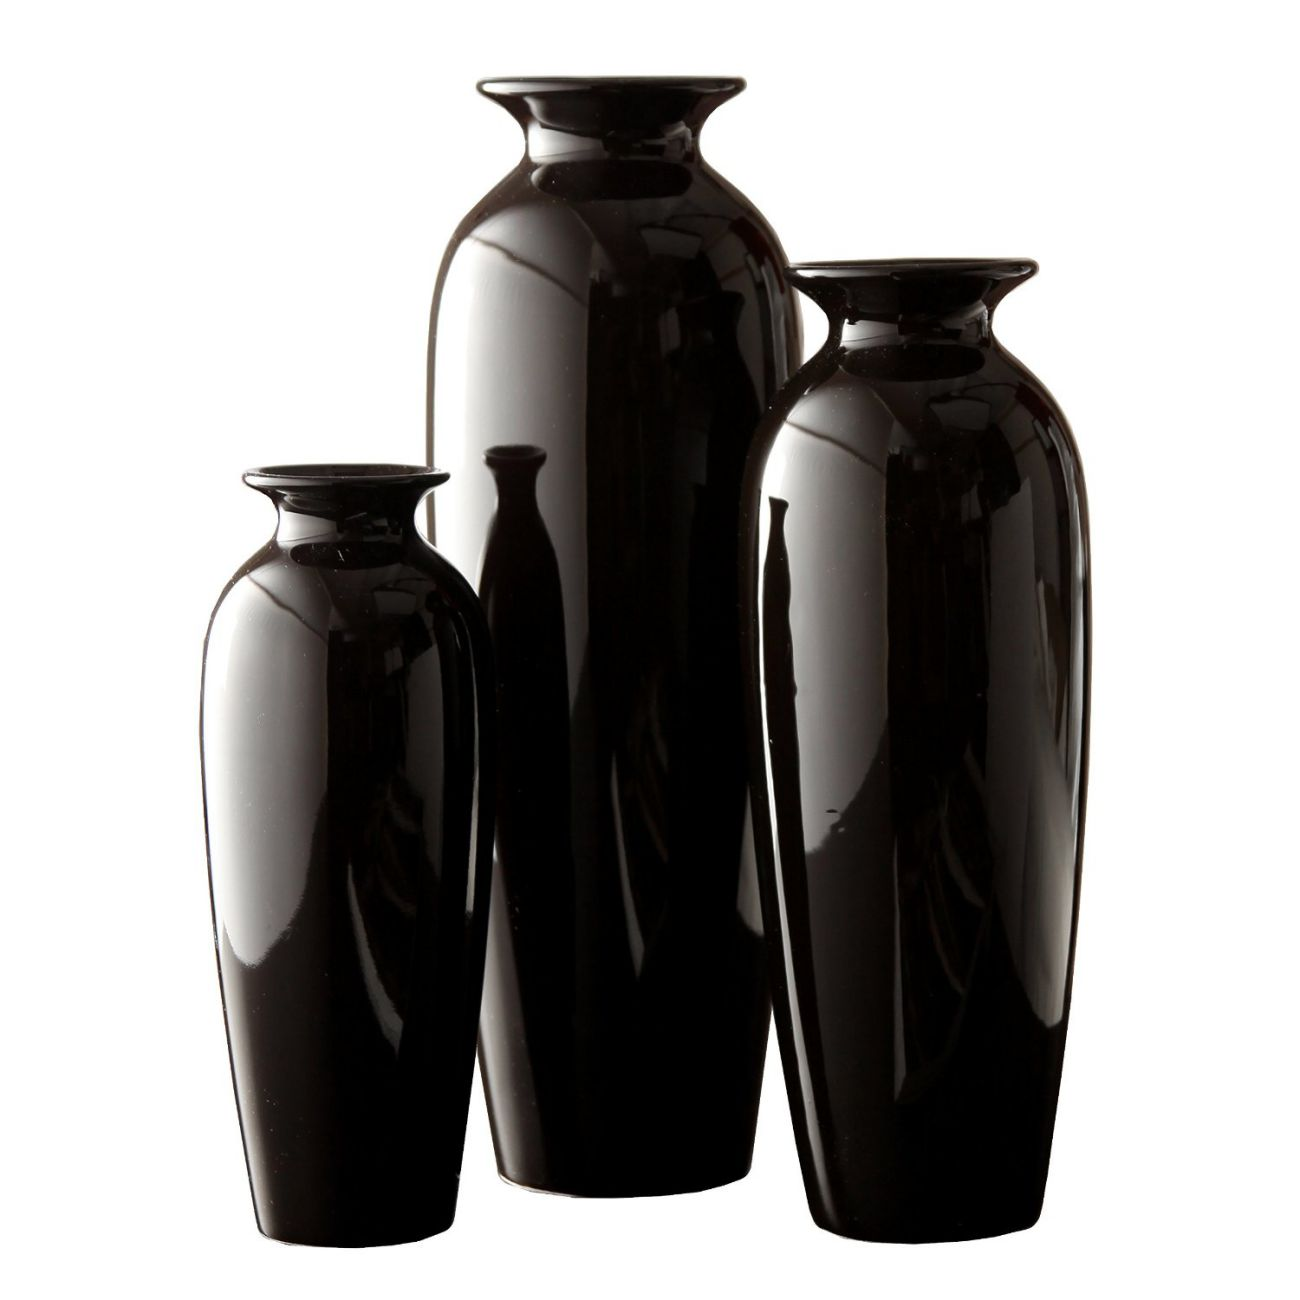 Hosley's Elegant Expressions Set of 3 Black Ceramic Vases in Gift Box- Box of 1 set